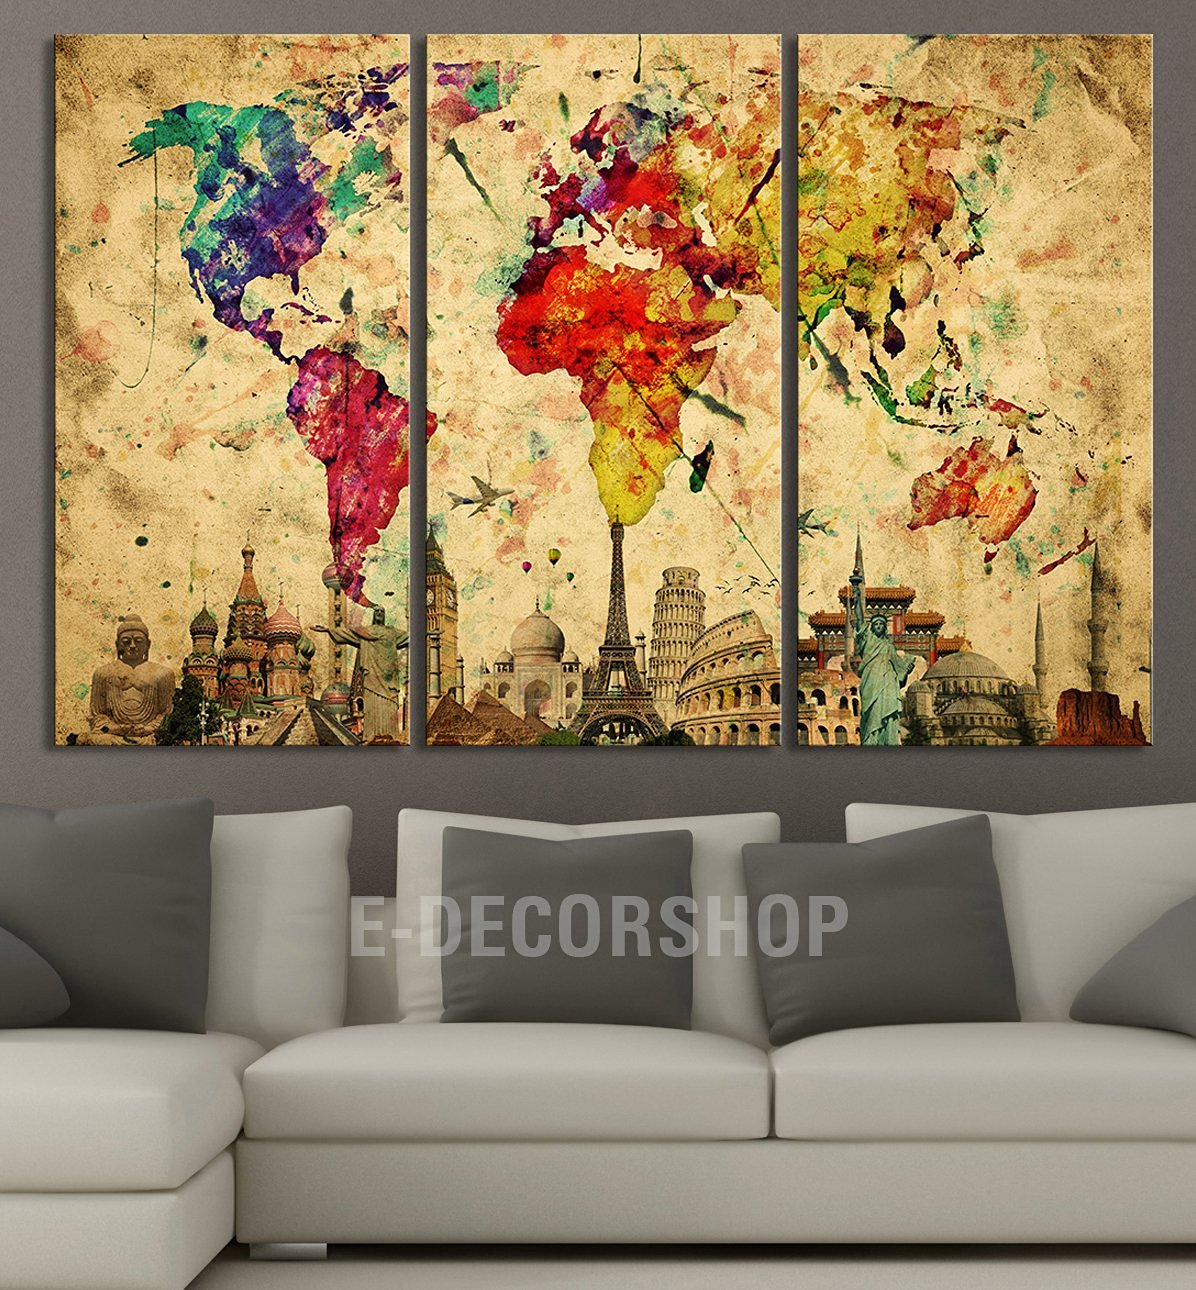 Buy Large Wall Art Canvas World Map - Colourful Ink Splashed World ...